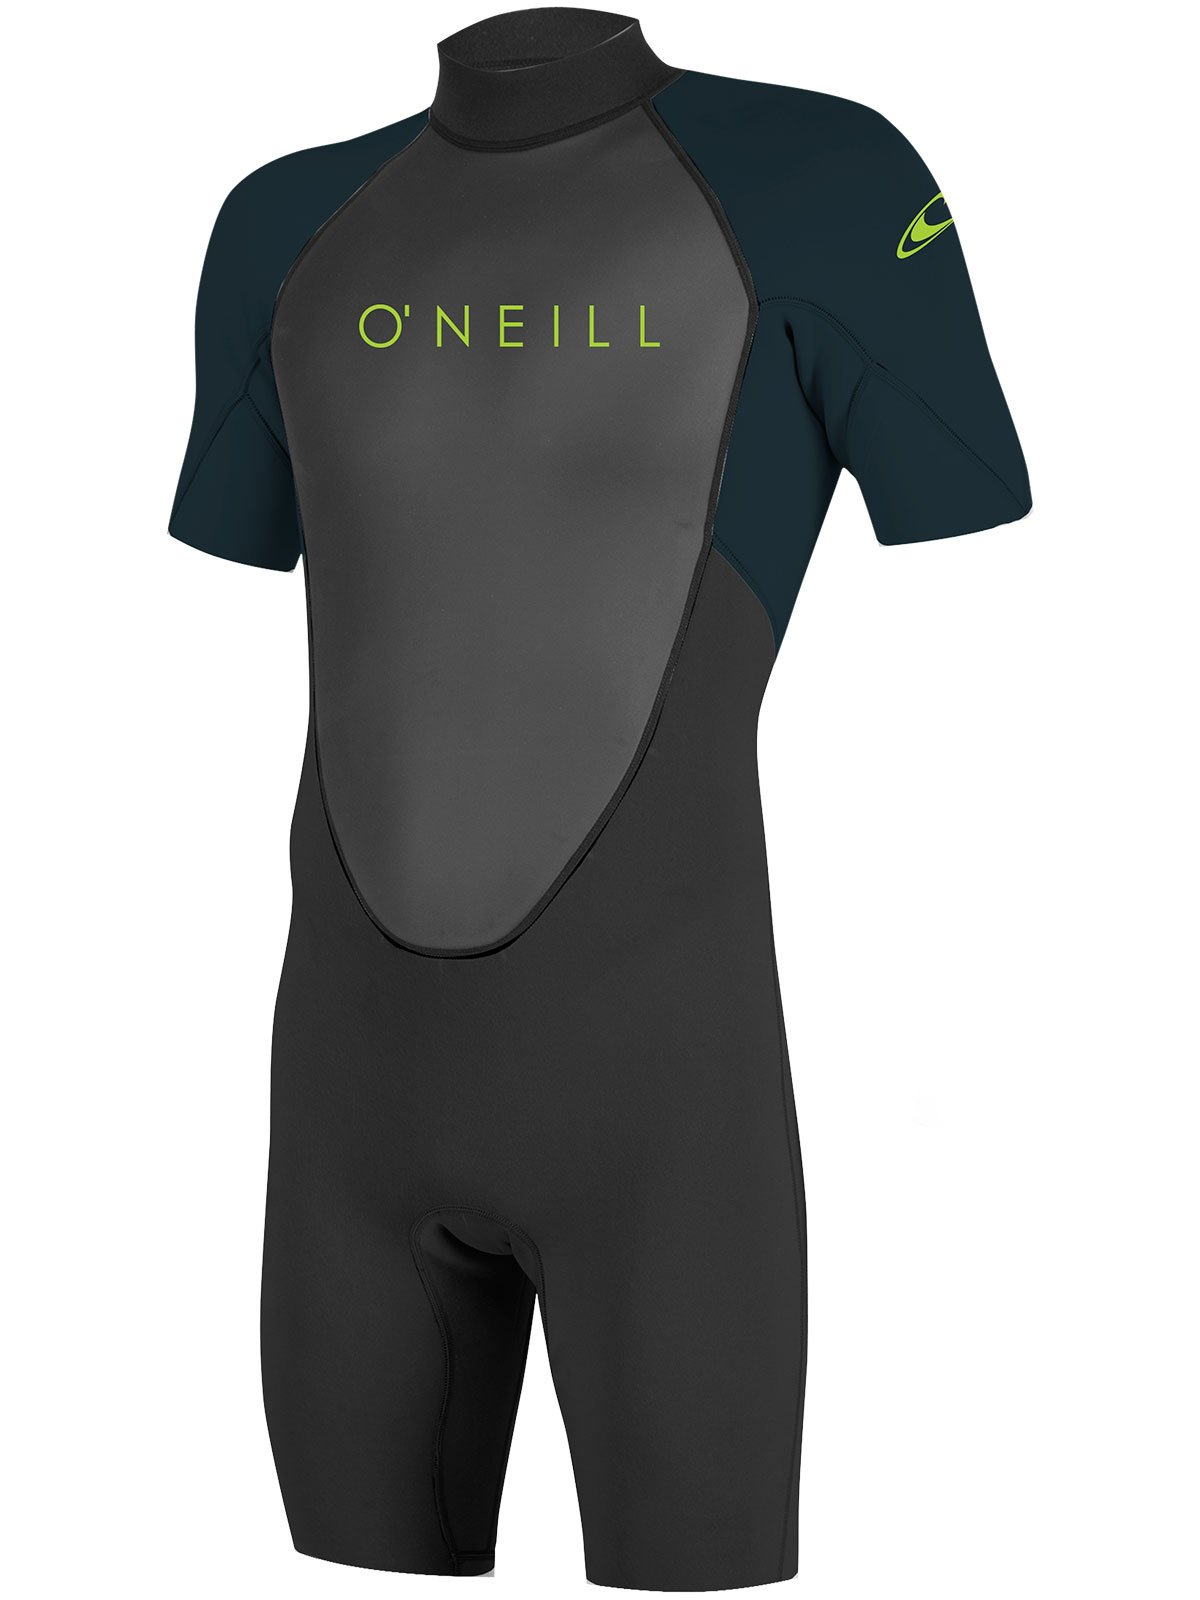 O'Neill Youth Reactor-2 2mm Back Zip Short Sleeve Spring Wetsuit, Black/Slate, 4 by O'Neill Wetsuits